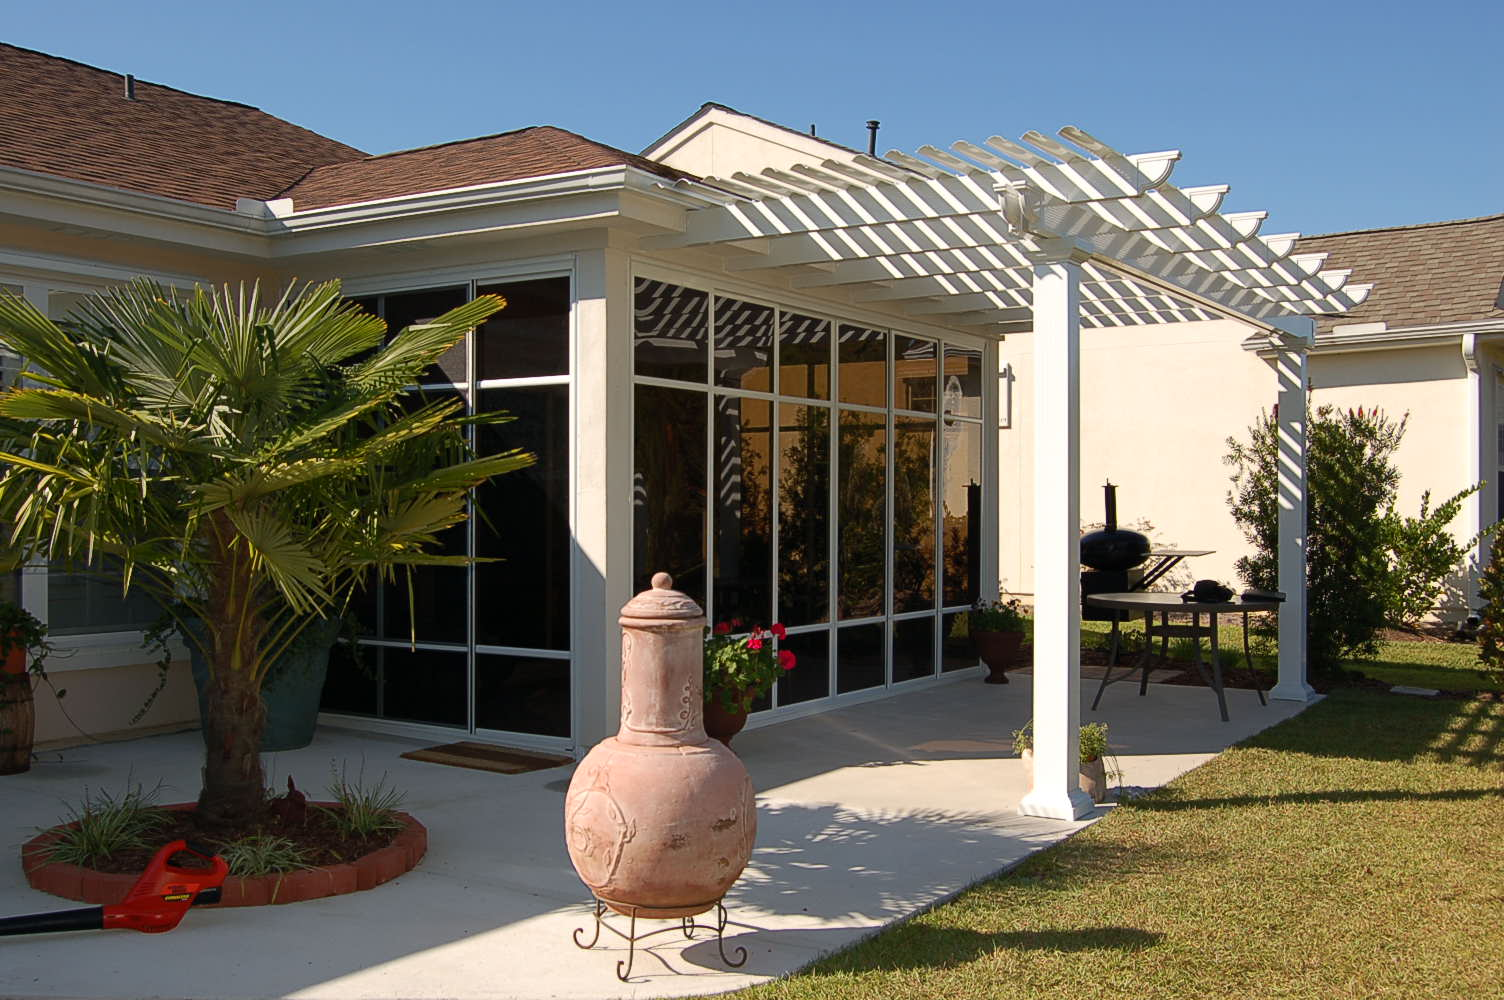 Astounding Images Pergola Attached To House Garden Landscape